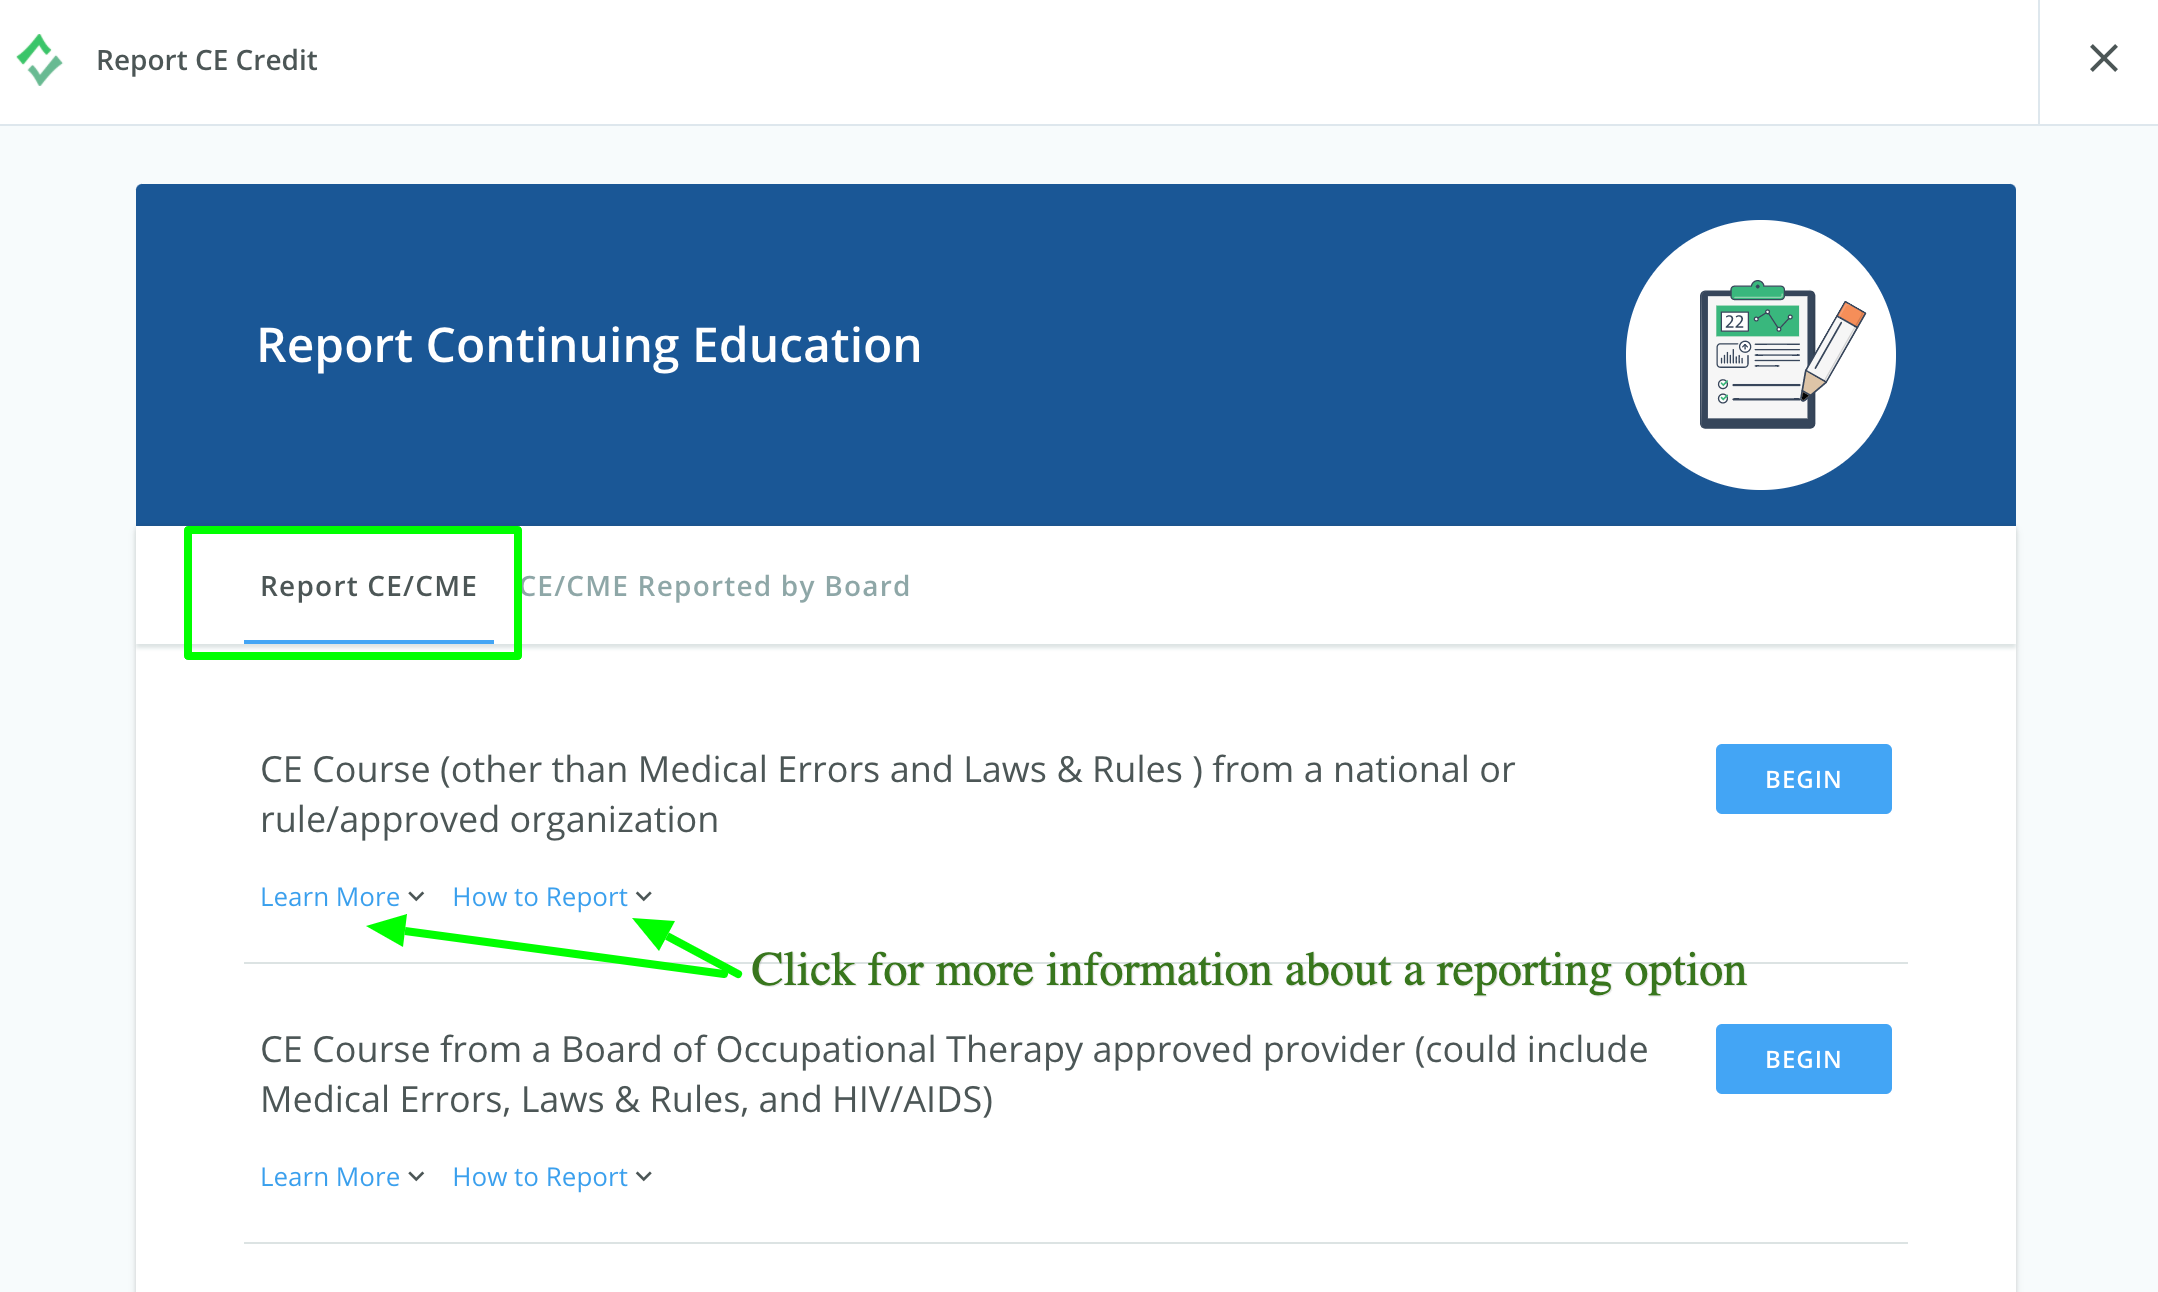 Screenshot of the Report Continuing Education page. Arrows point to the Learn More and How to Report links underneath a reporting option.